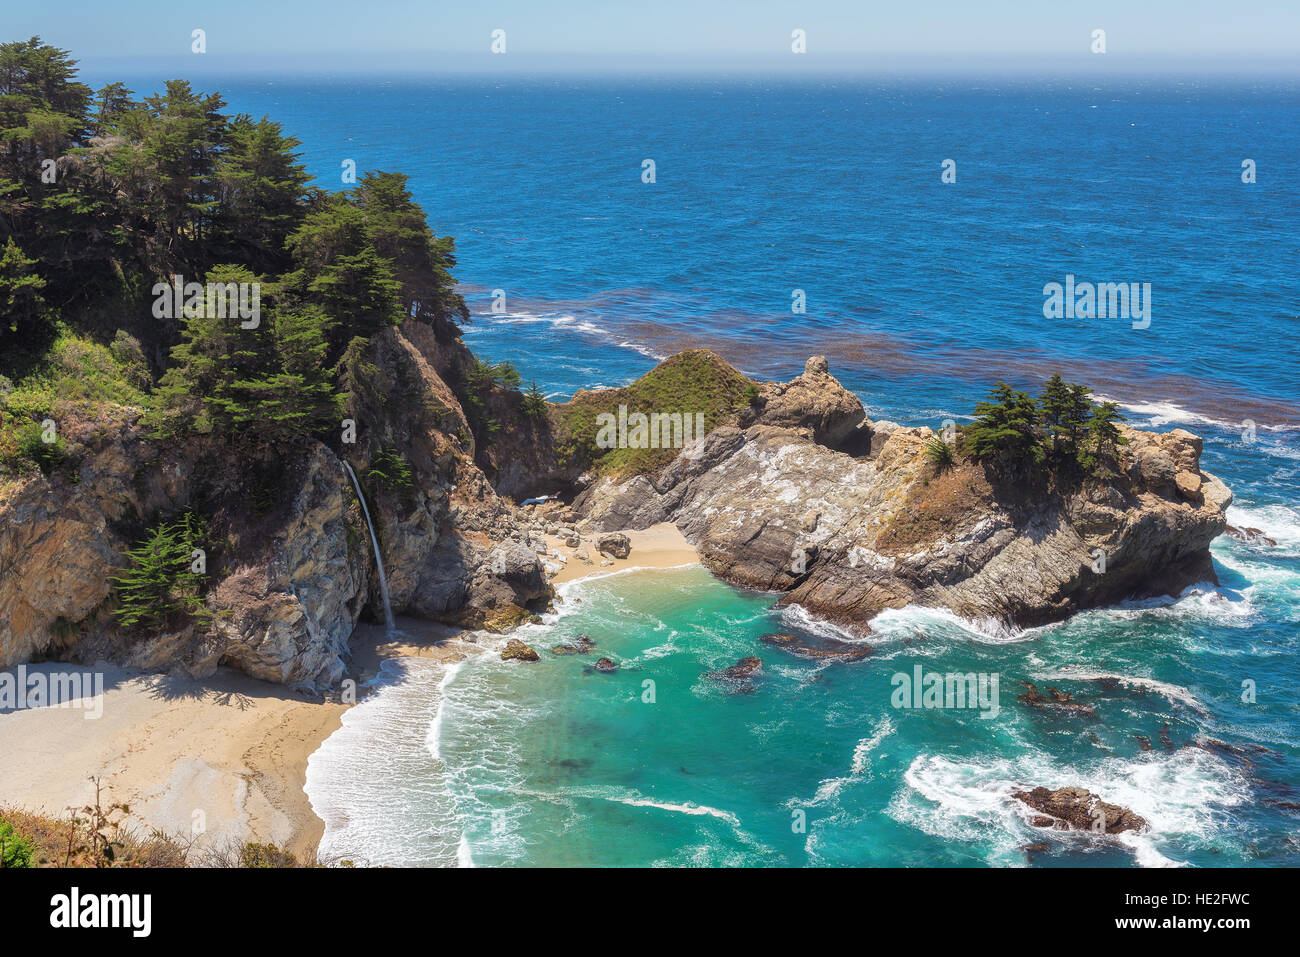 Beautiful beach on Pacific coast - Stock Image